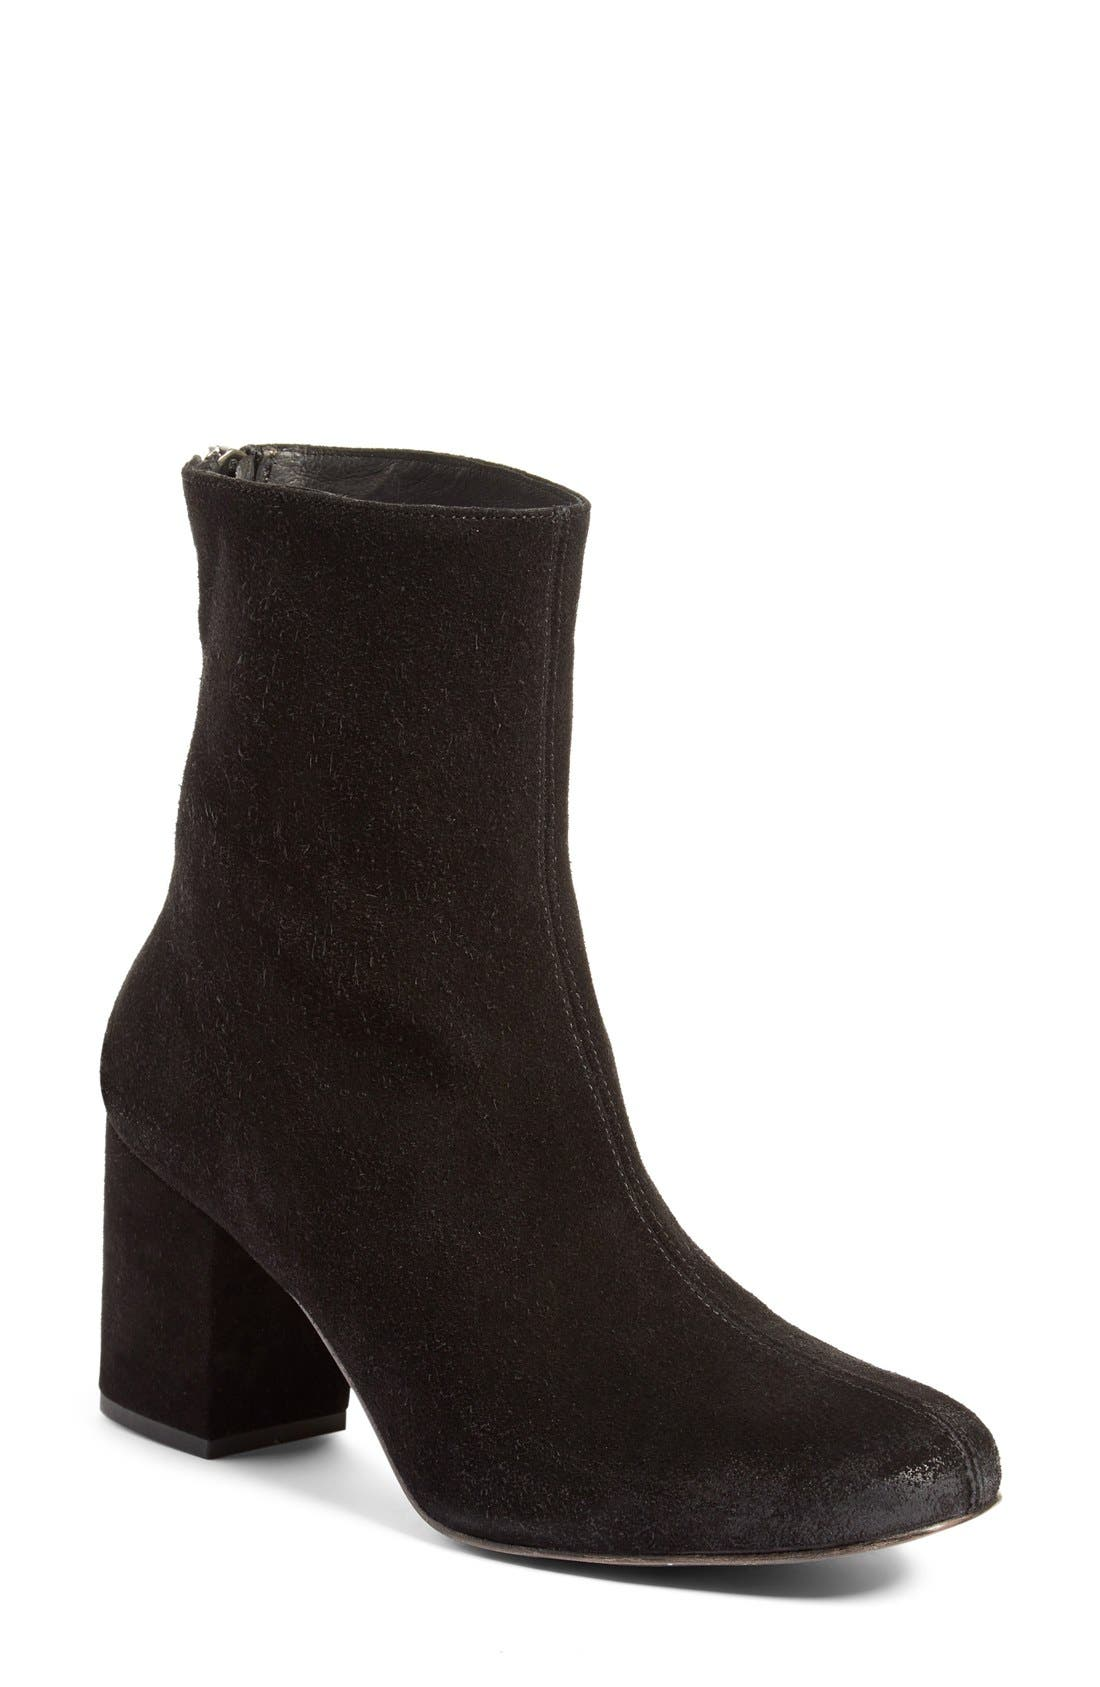 Free People Cecile Block Heel Bootie, Black